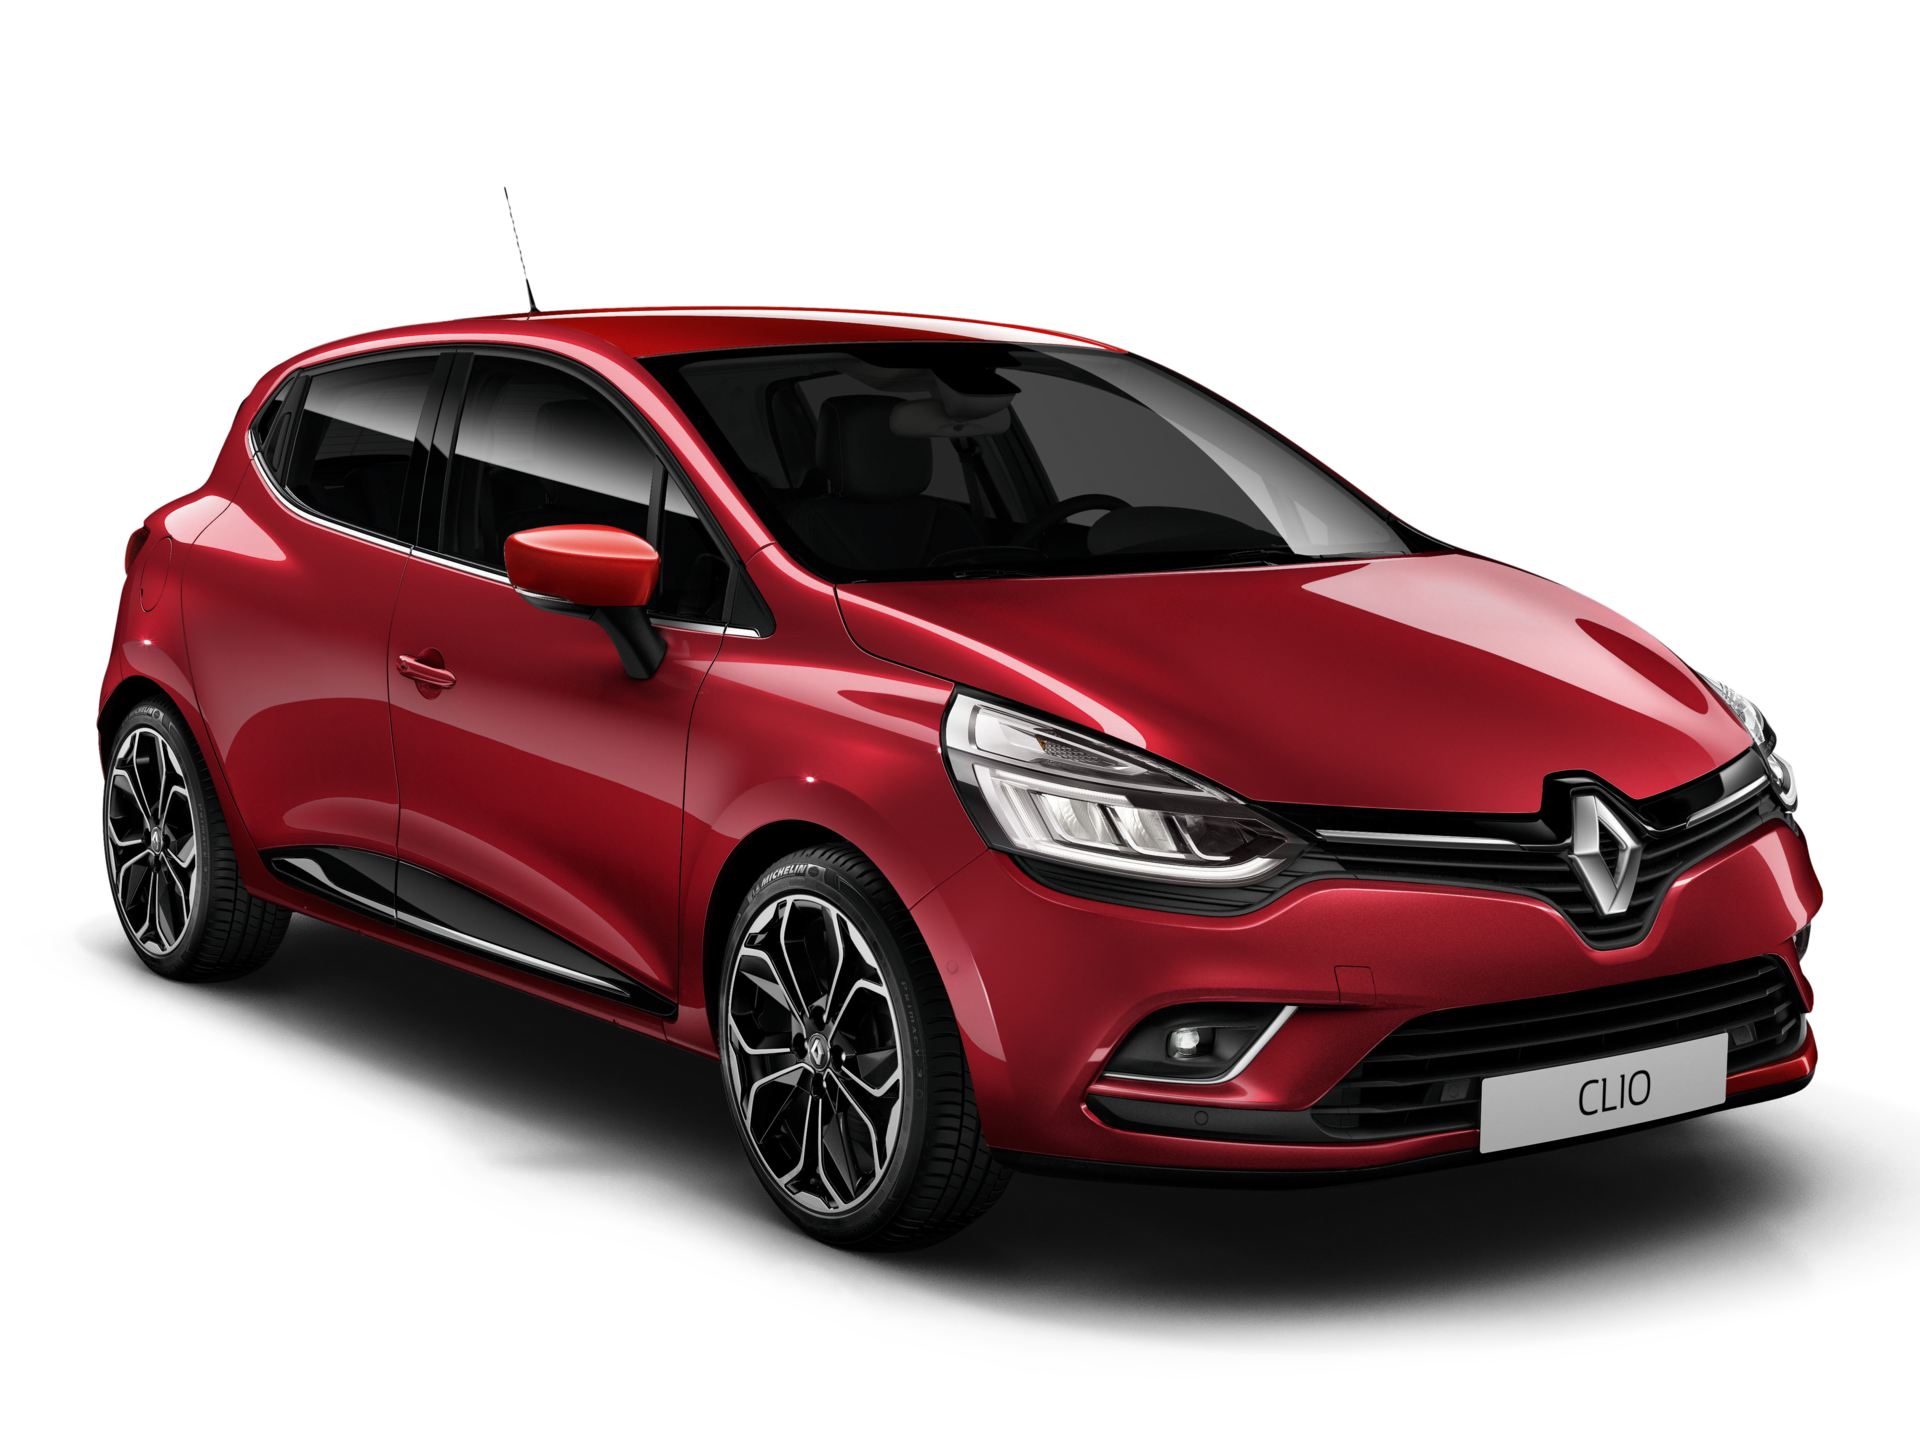 renault clio hatchback tce friesland lease priv lease. Black Bedroom Furniture Sets. Home Design Ideas